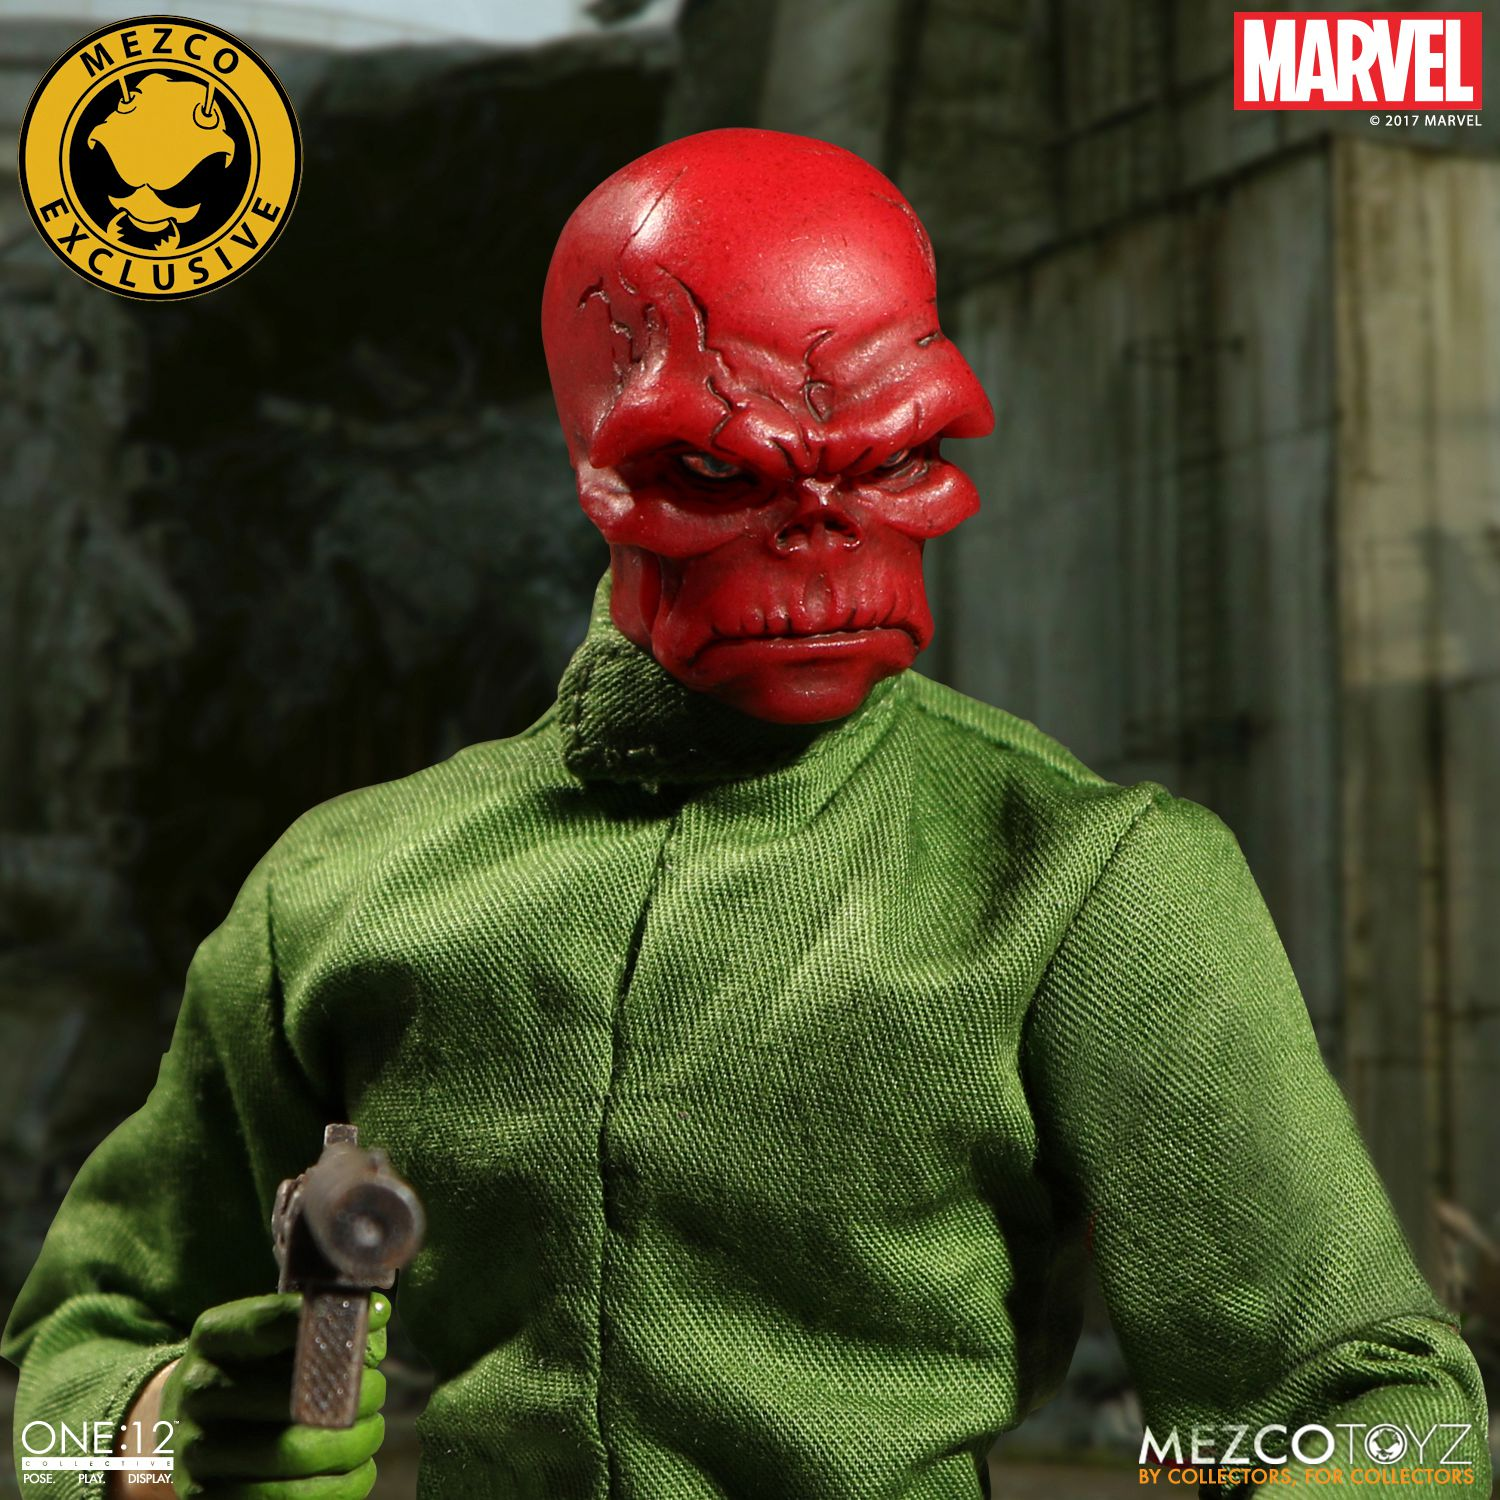 [Action Figures] Todo sobre Action Figures, Hot Toys, Sideshows - Página 15 3869